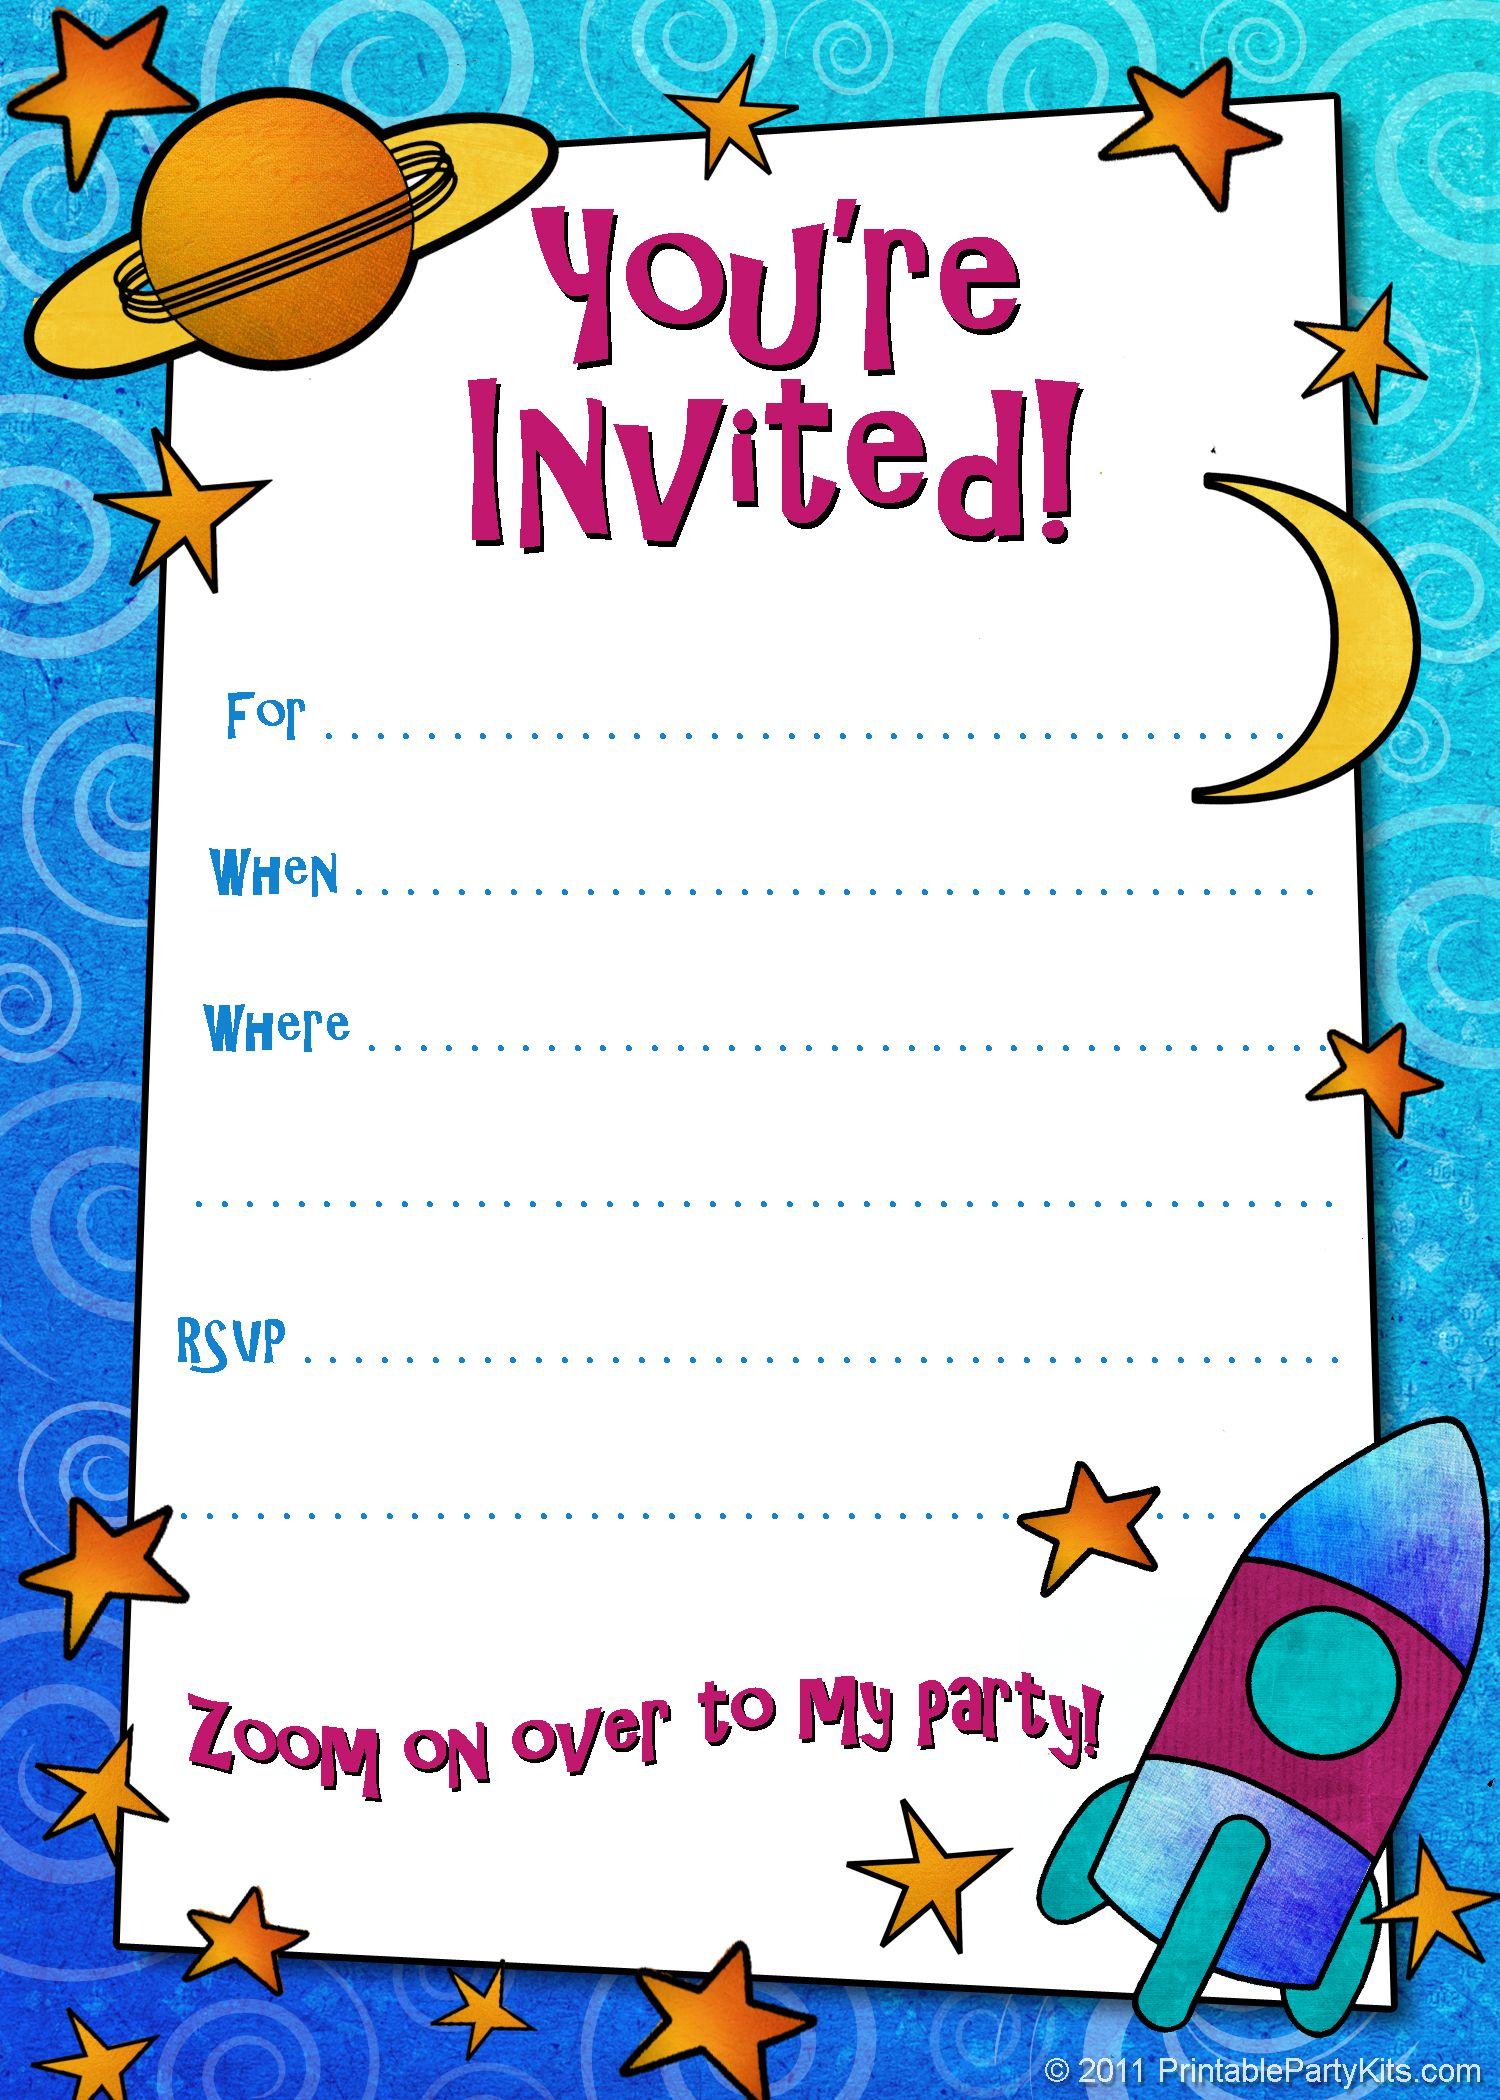 Free Printable Boys Birthday Party Invitations Boy Birthday - Party invitation template: train party invitations templates